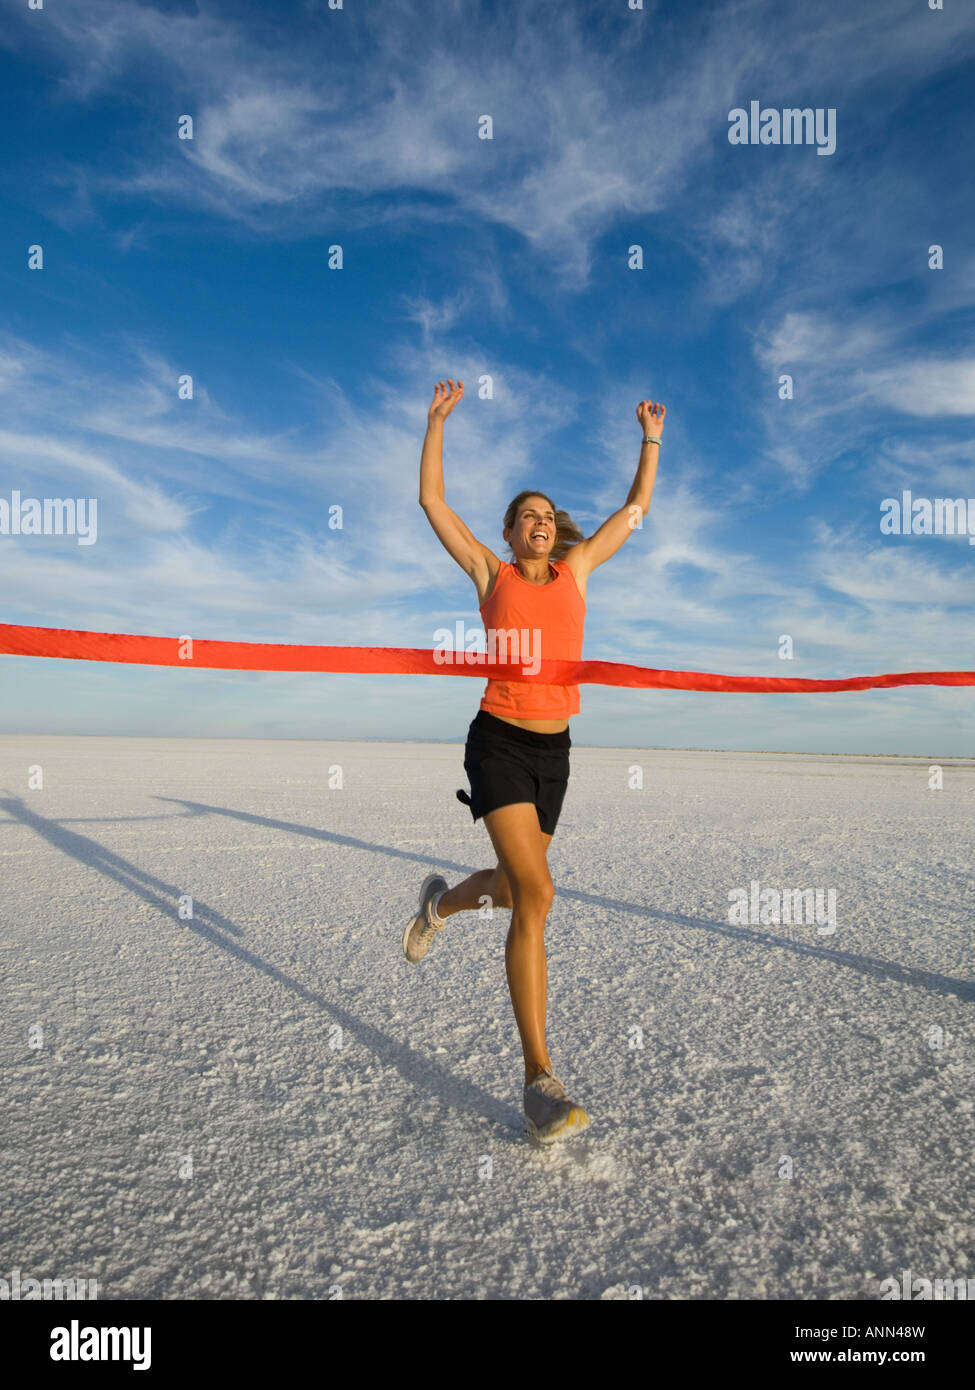 Woman running across finish line, Utah, United States - Stock Image